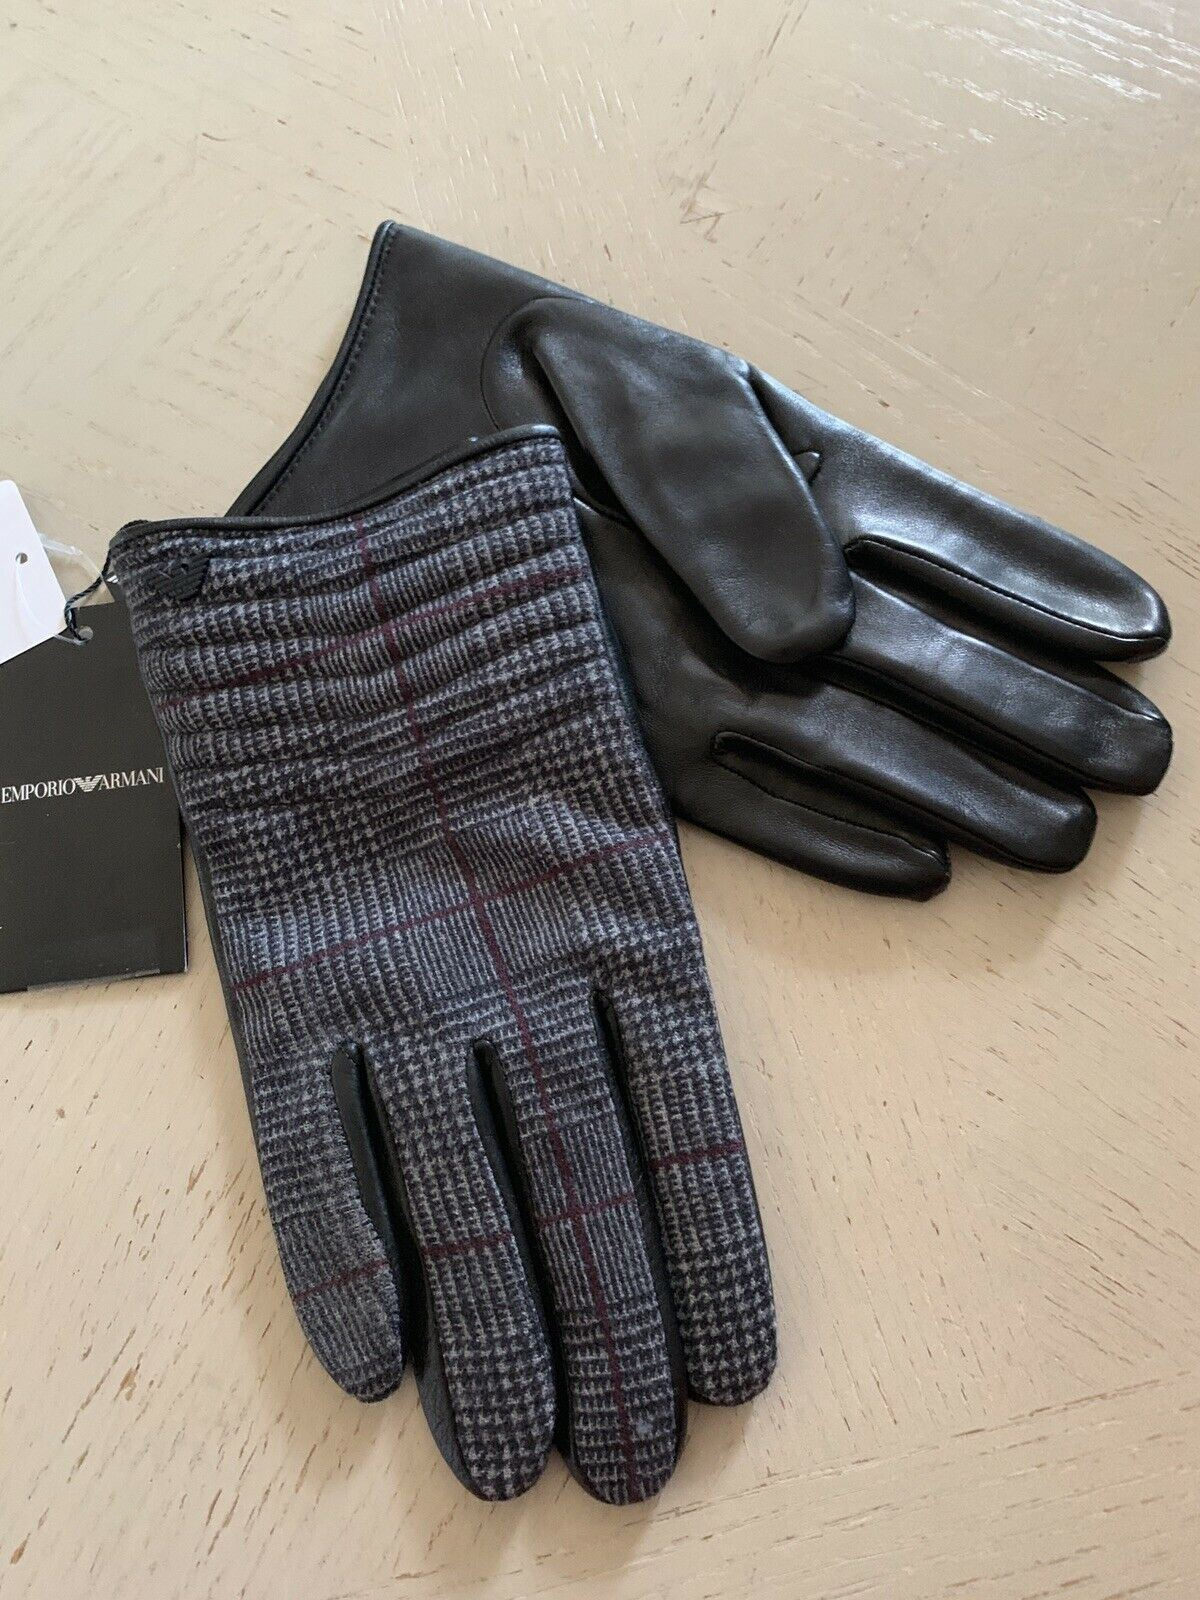 cf52d0436ad19 NWT $345 Emporio Armani Mens Leather/Wool Gloves Blak /Gray Size M Italy